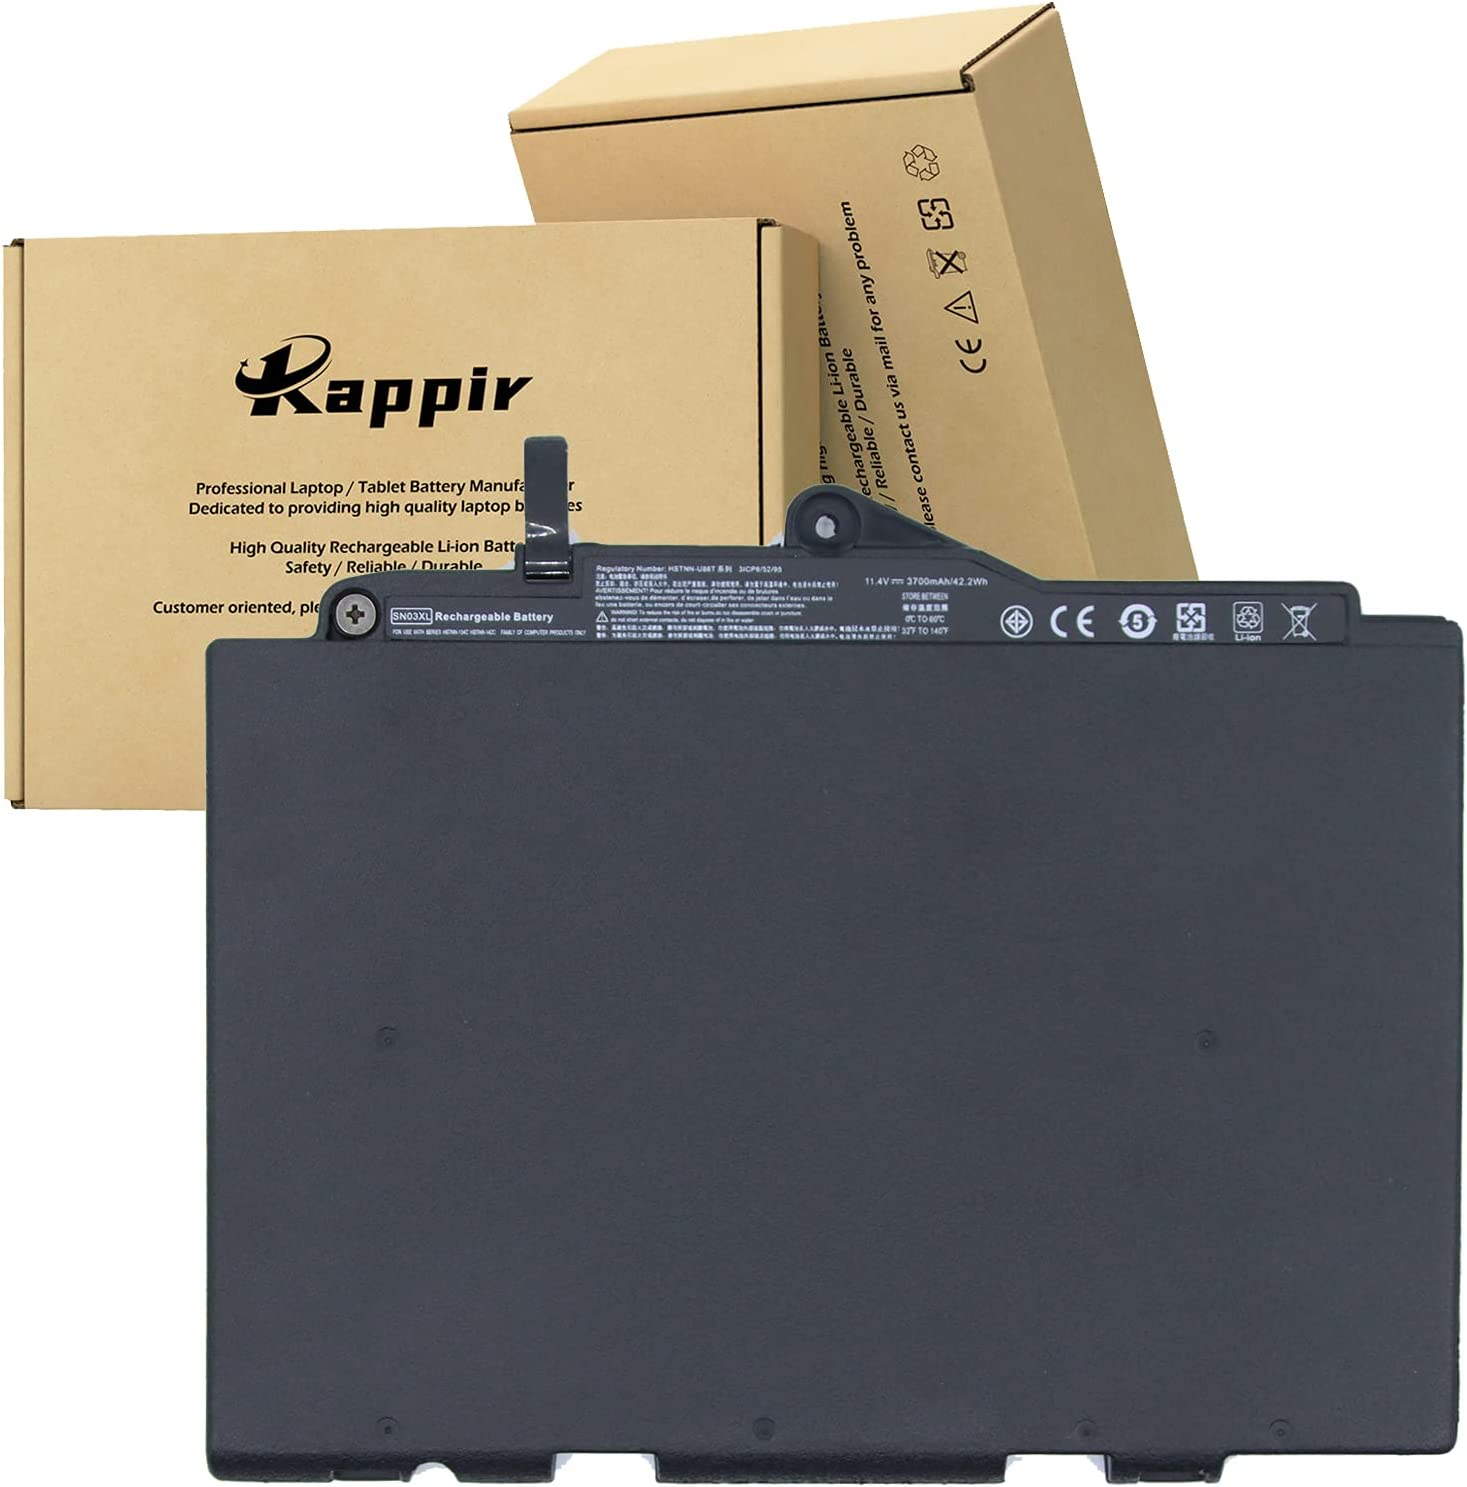 BOWEIRUI SN03XL Topics on TV 11.4V 42.2Wh 3700mAh Batter Clearance SALE! Limited time! Replacement Laptop